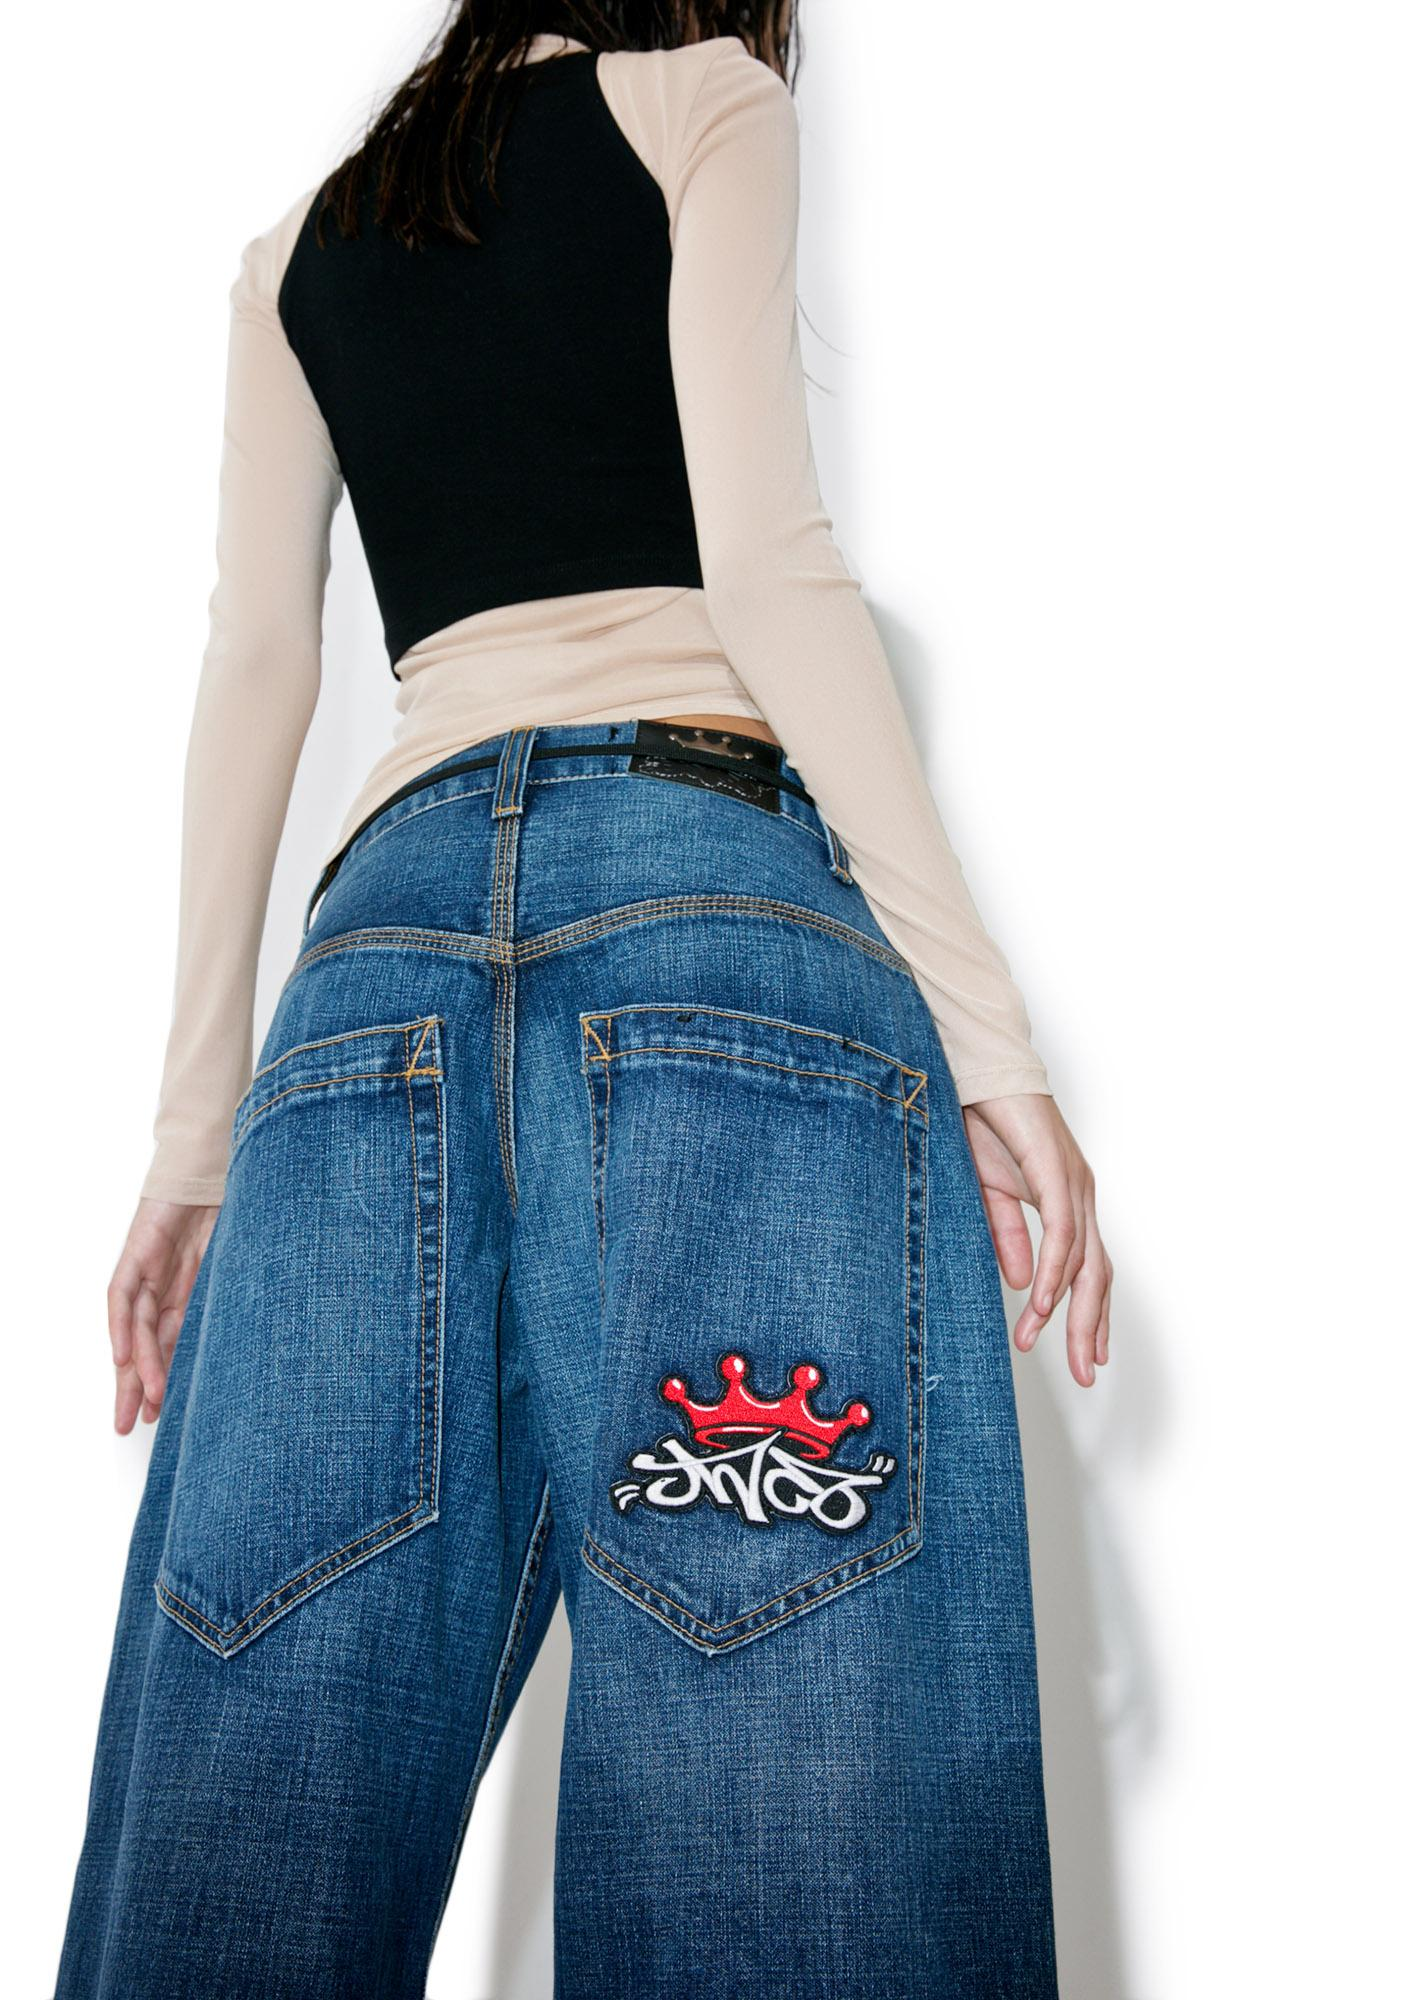 JNCO Classic Half Pipe Jeans